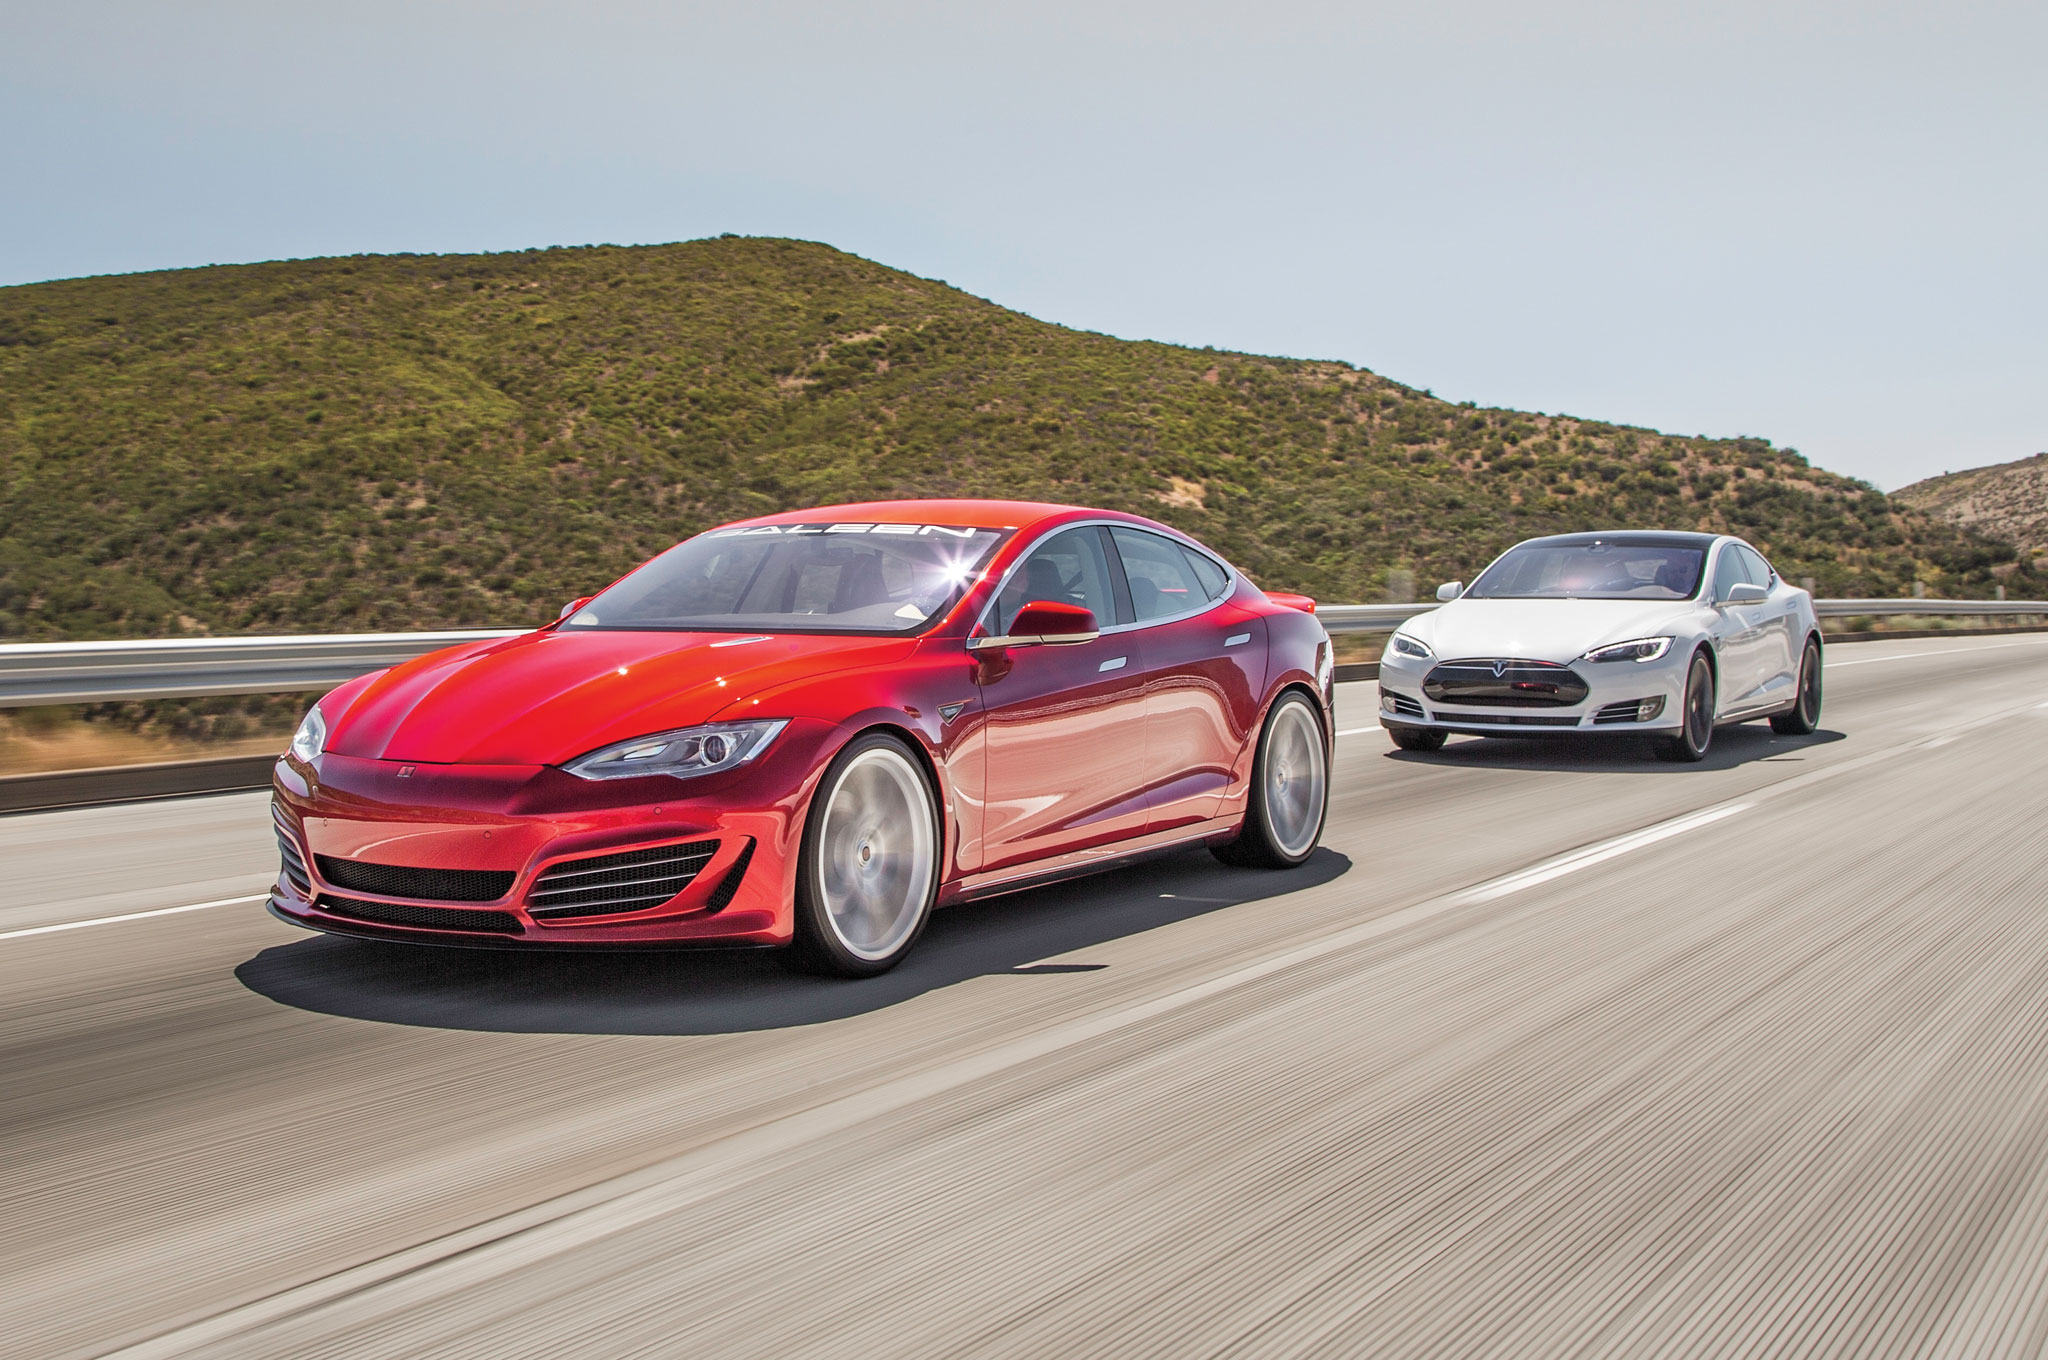 2015 Tesla Model S P85D And Saleen GTX Comparison 04